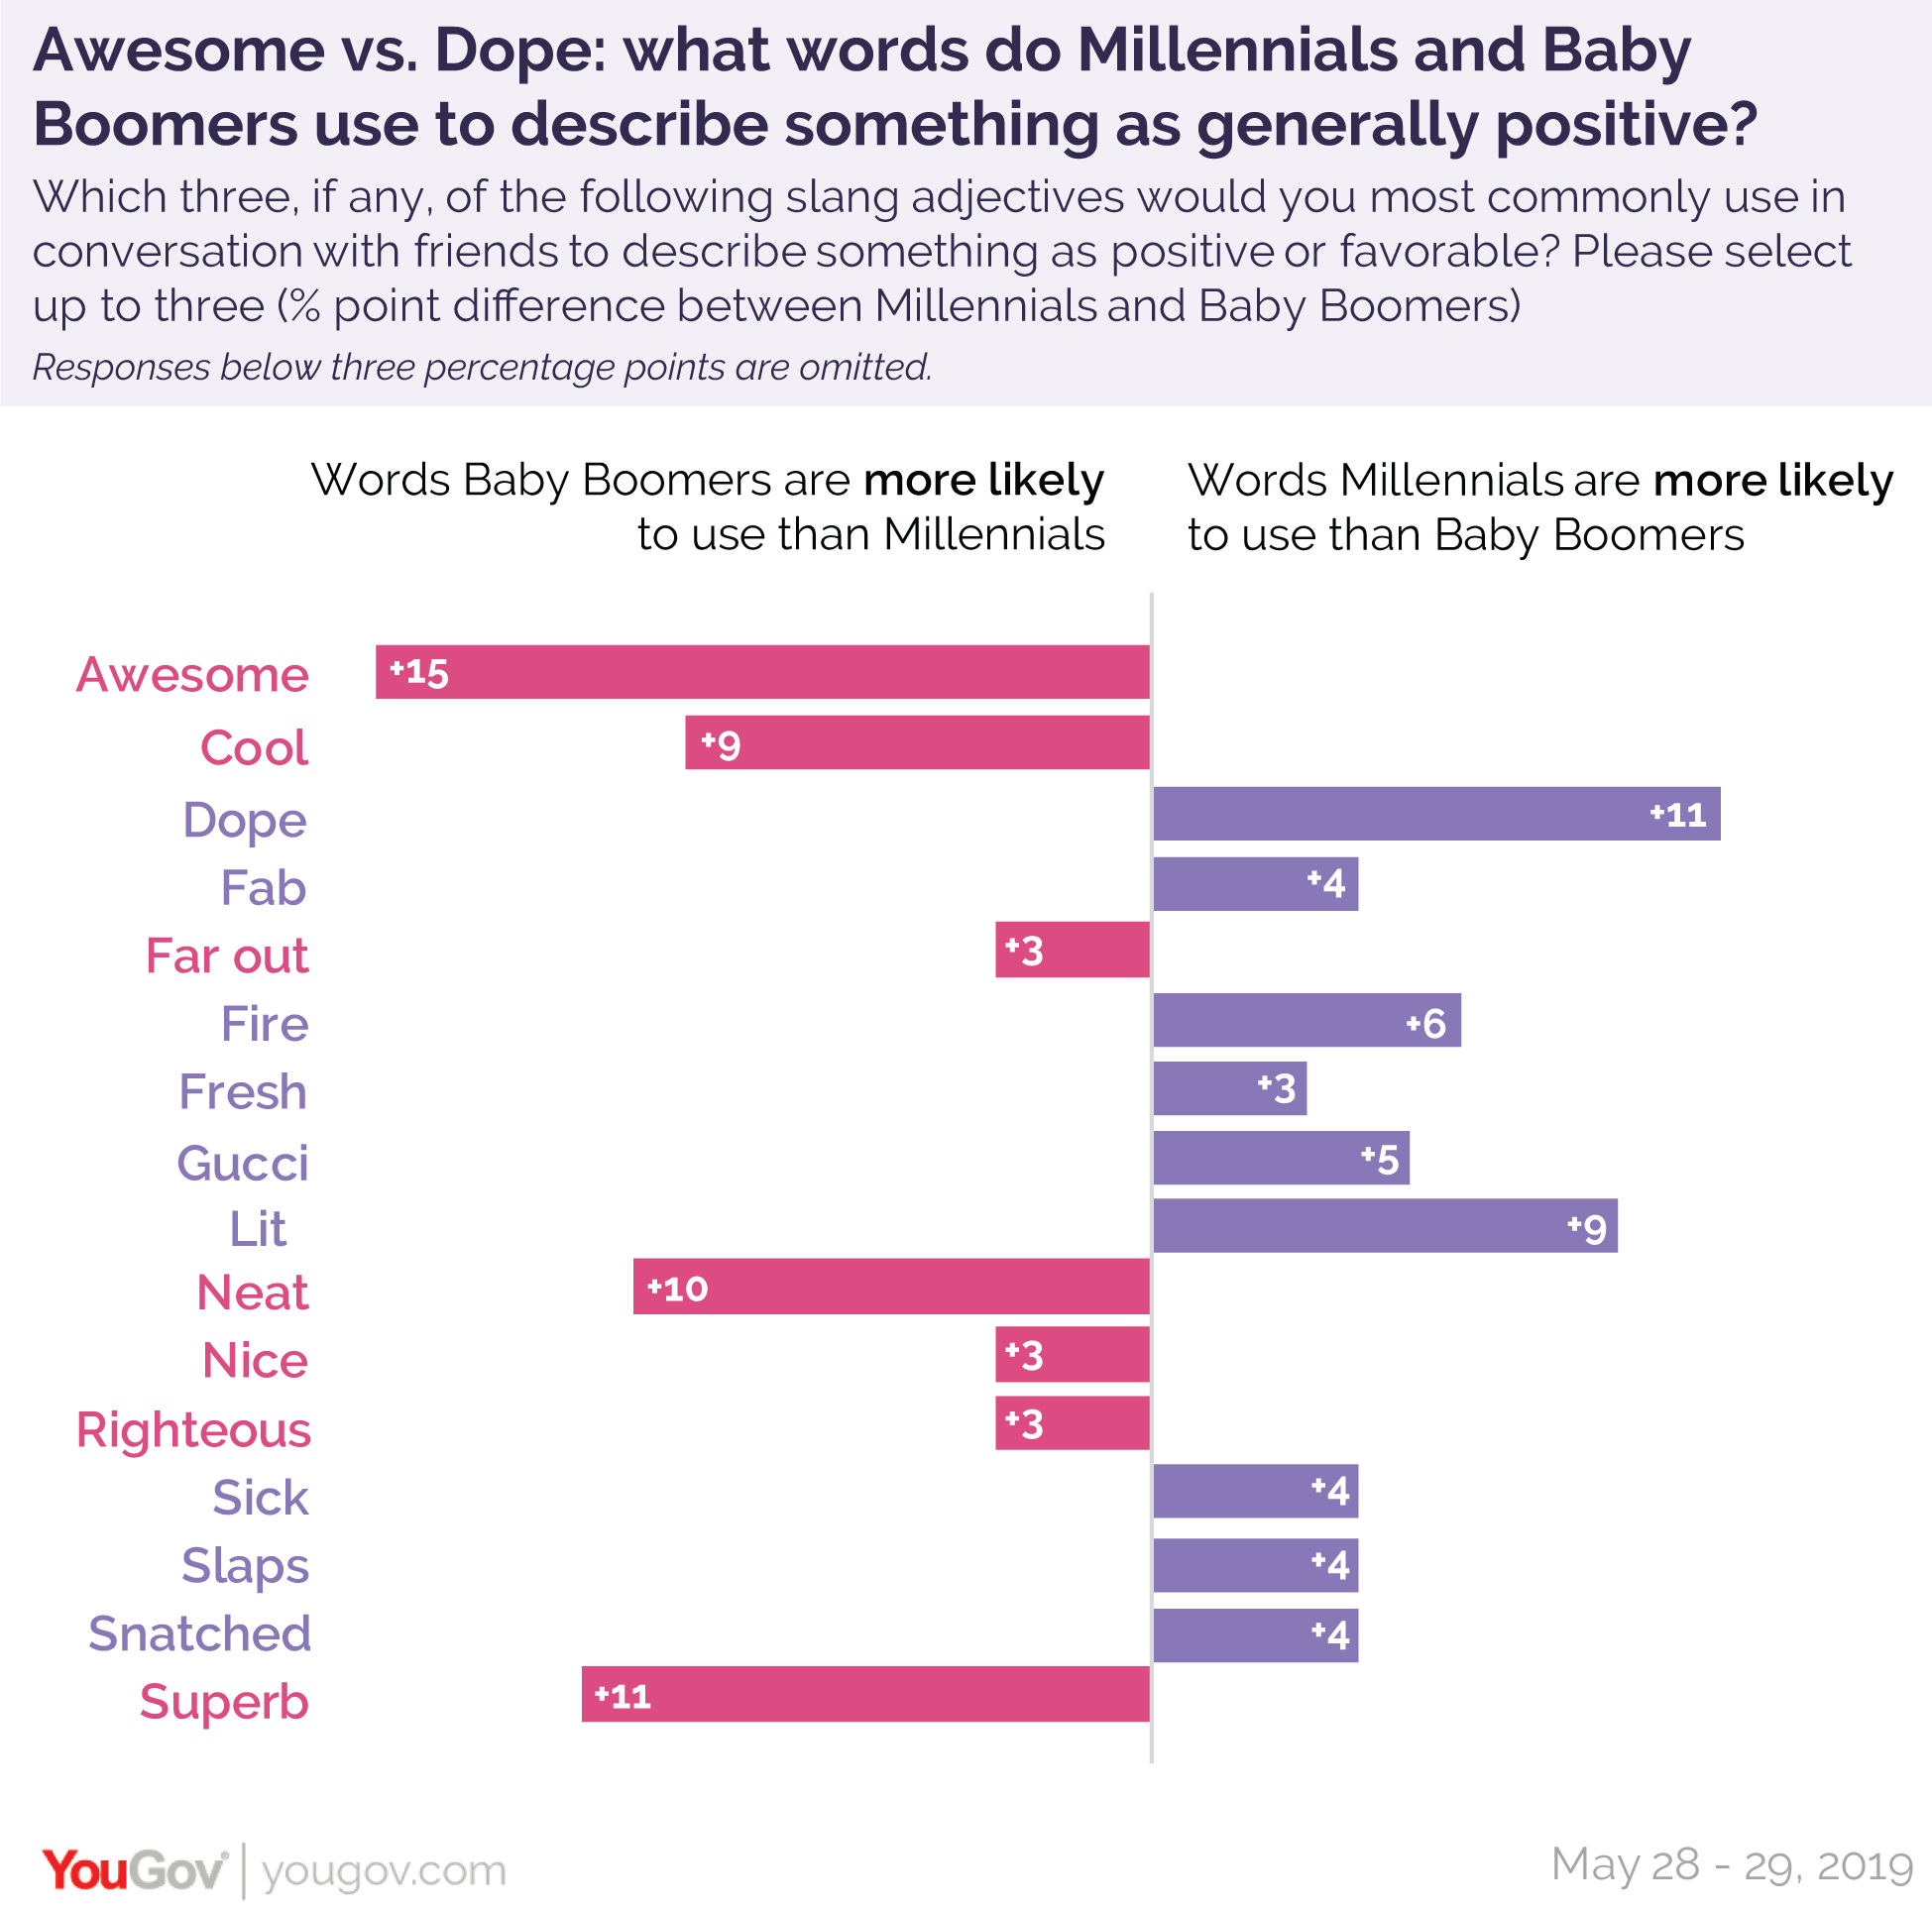 What words do Millennials and Baby Boomers use to describe something as generally positive?